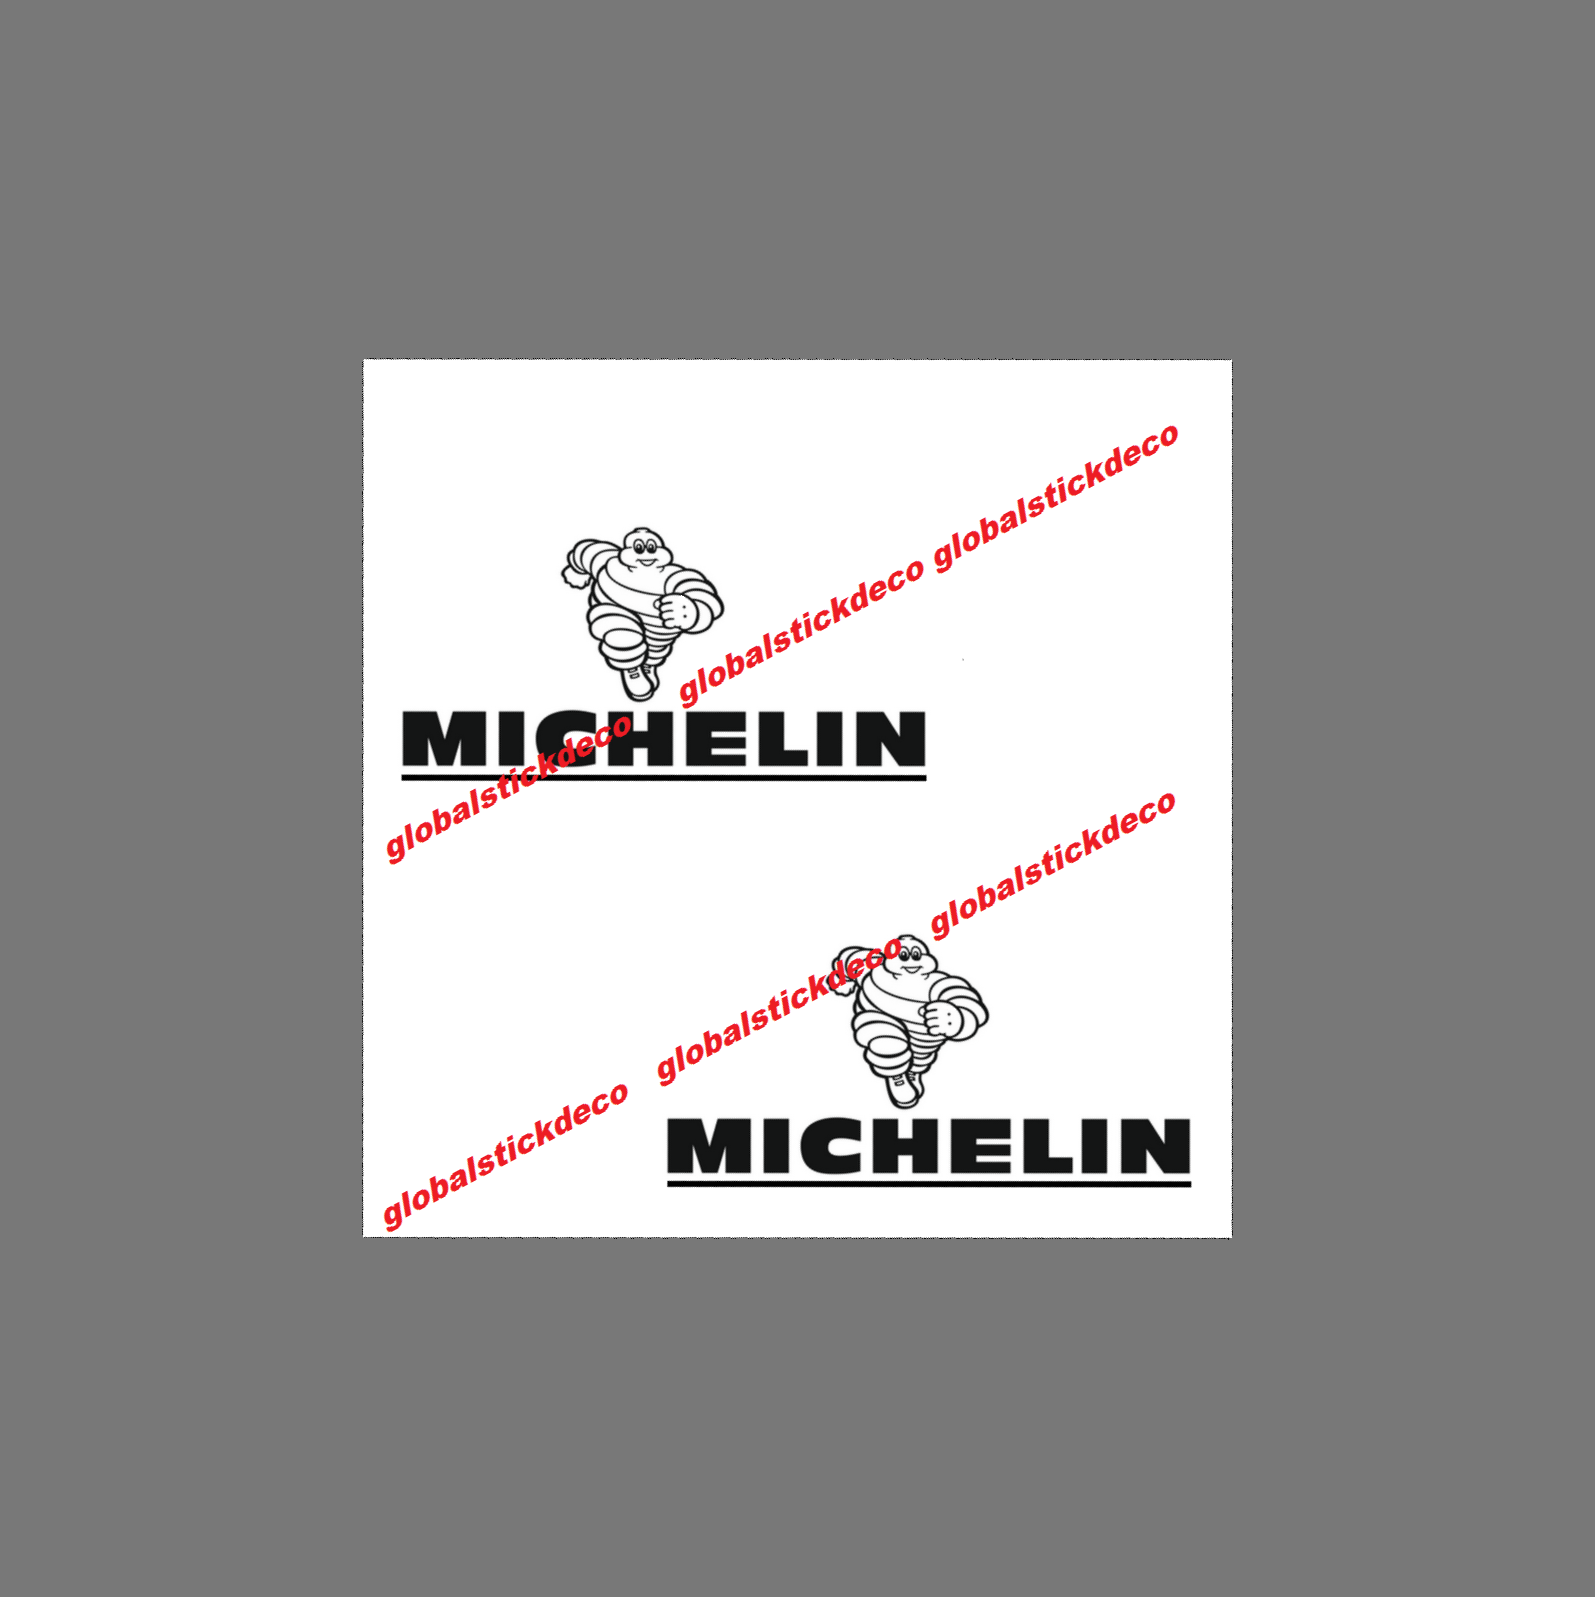 Michelin global